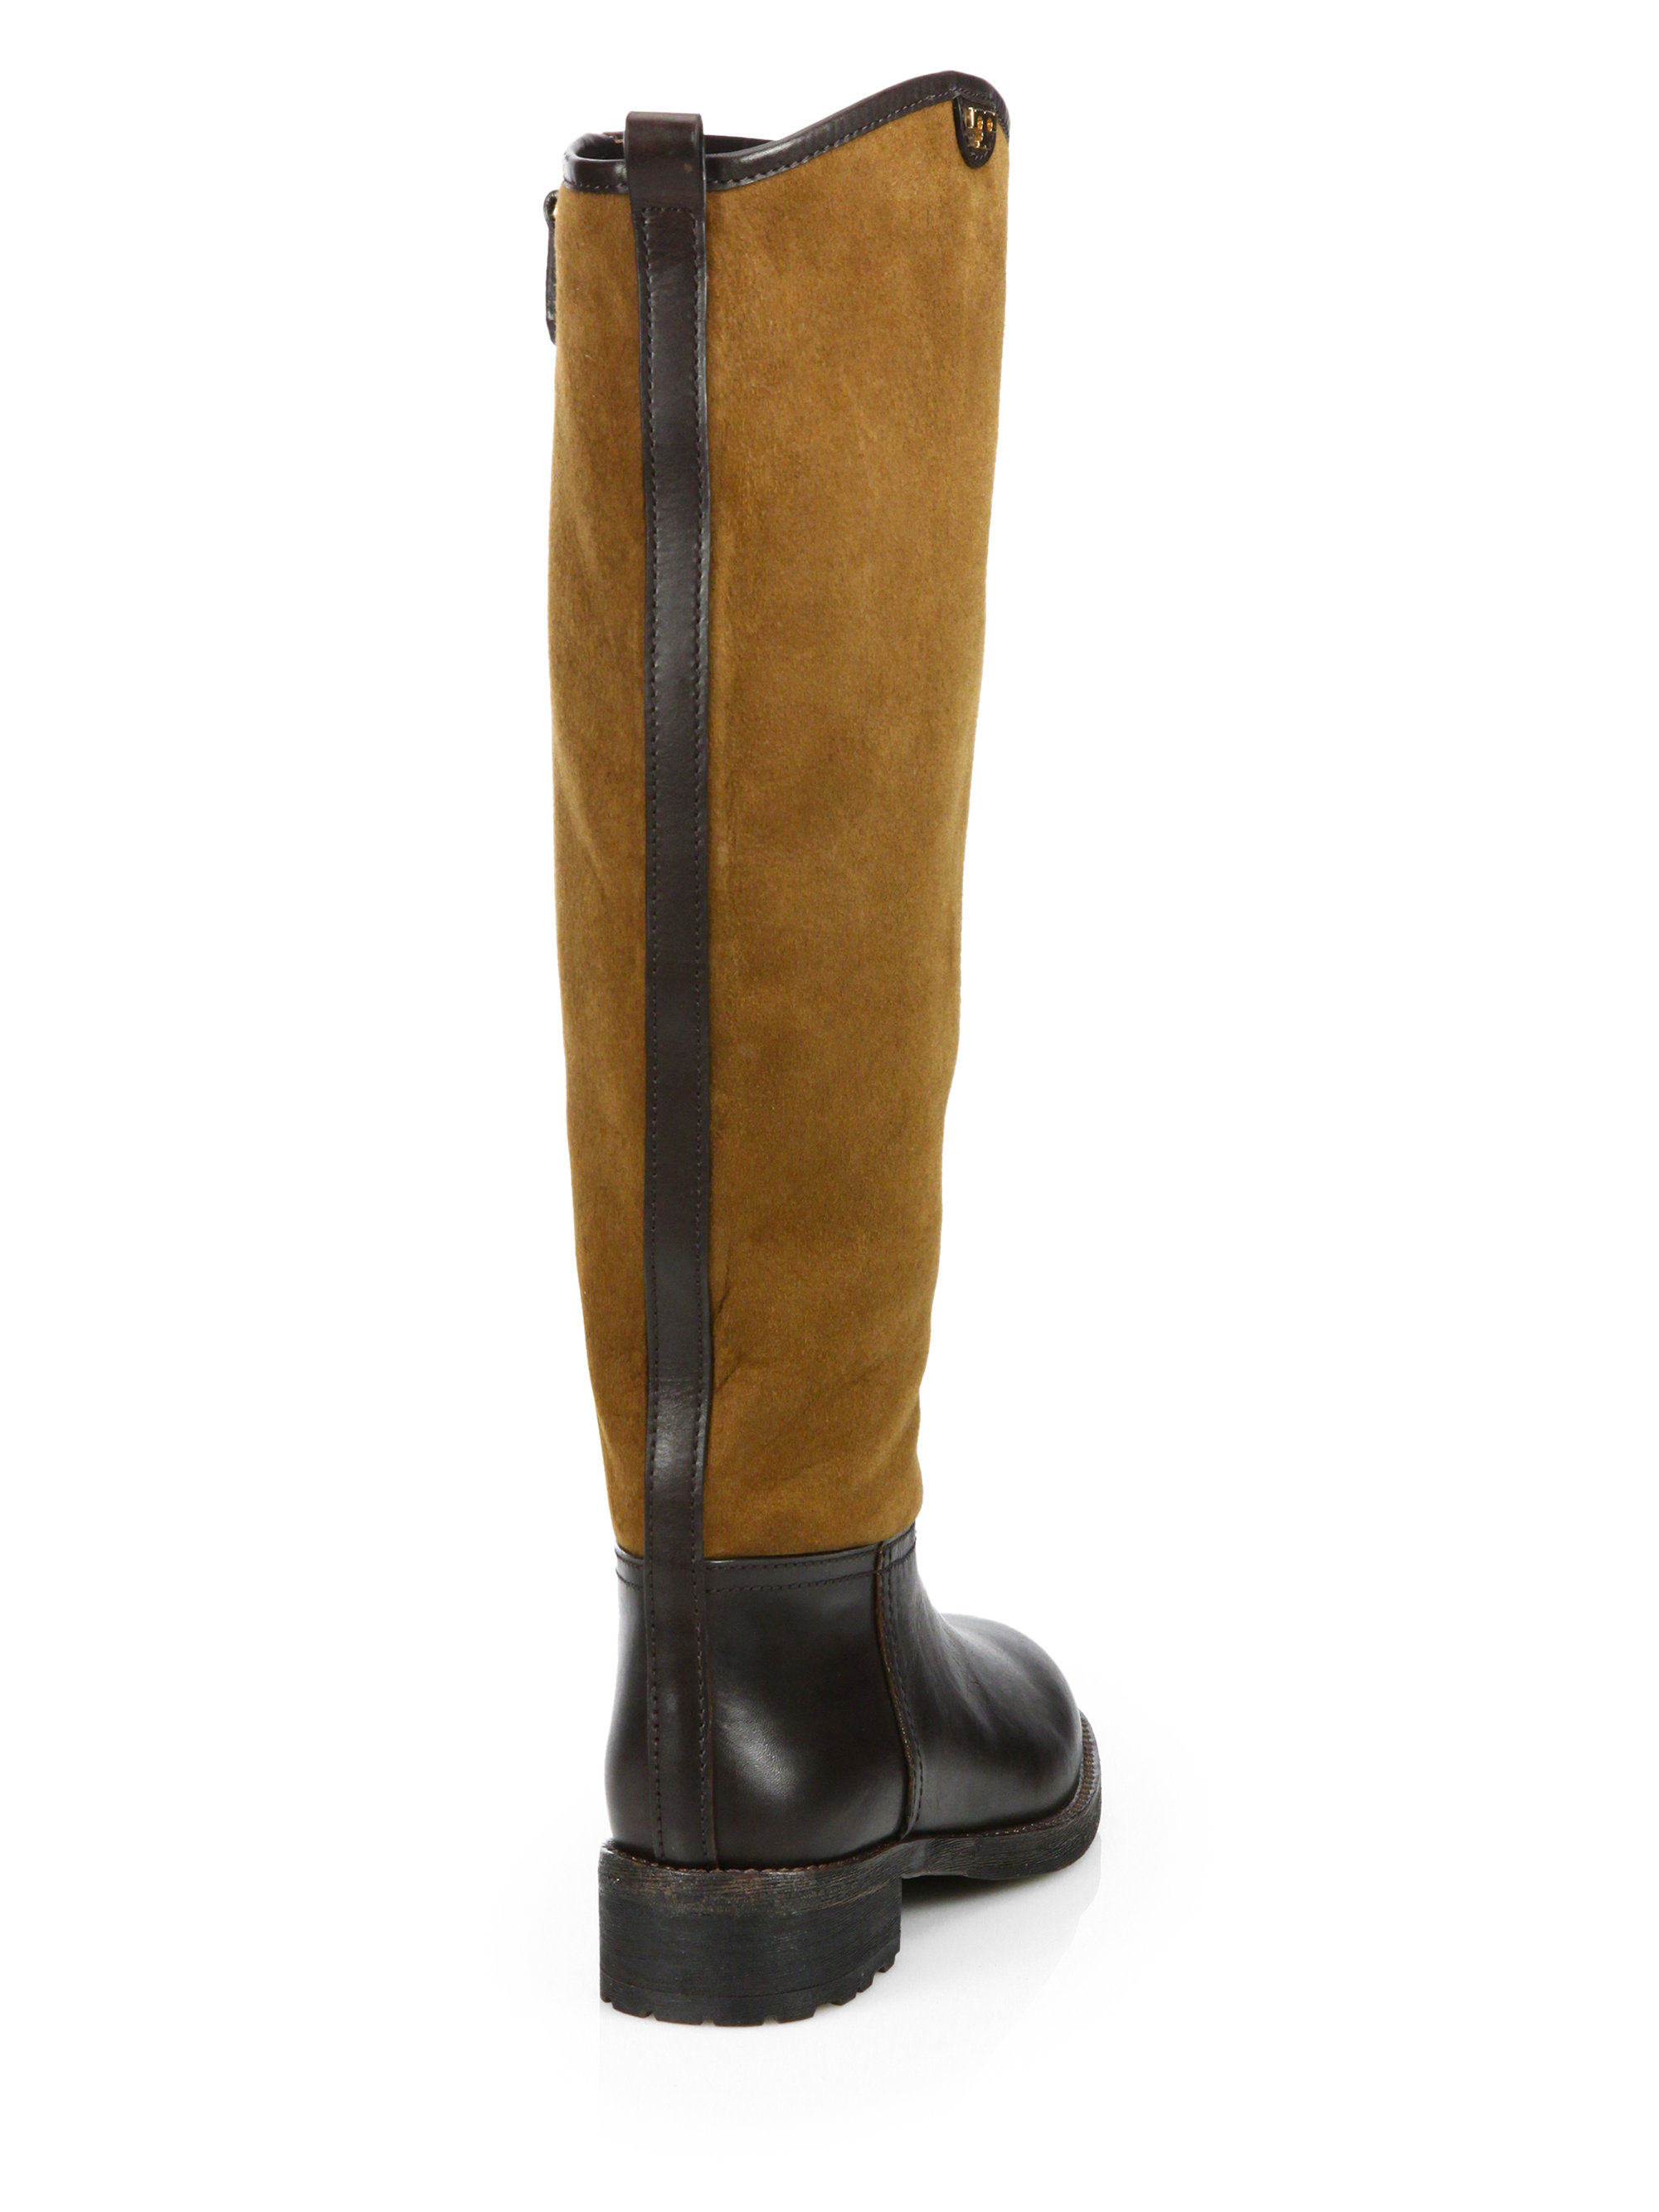 02ee0cc96 Lyst - Tory Burch Kensington Shearling-Lined Knee-High Riding Boots ...